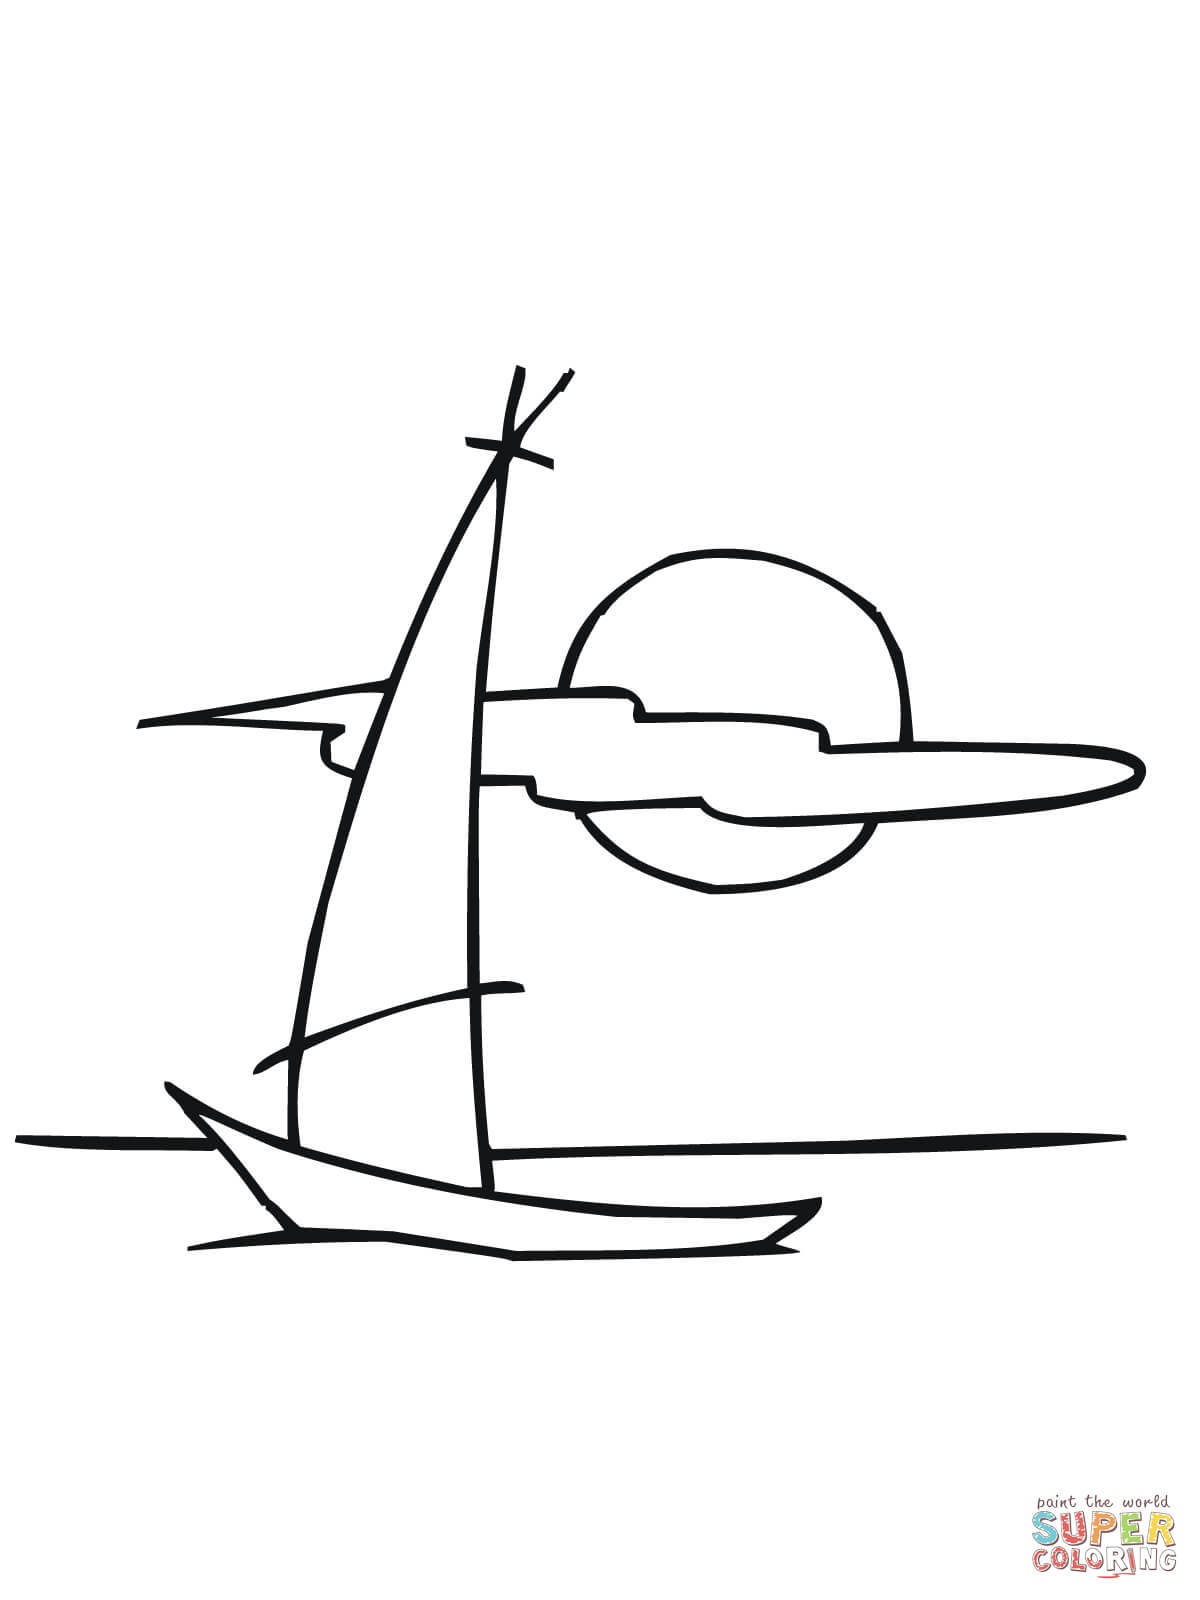 Sailing Dinghy Boat Coloring Page   Free Printable Coloring Pages - Free Printable Sailboat Template